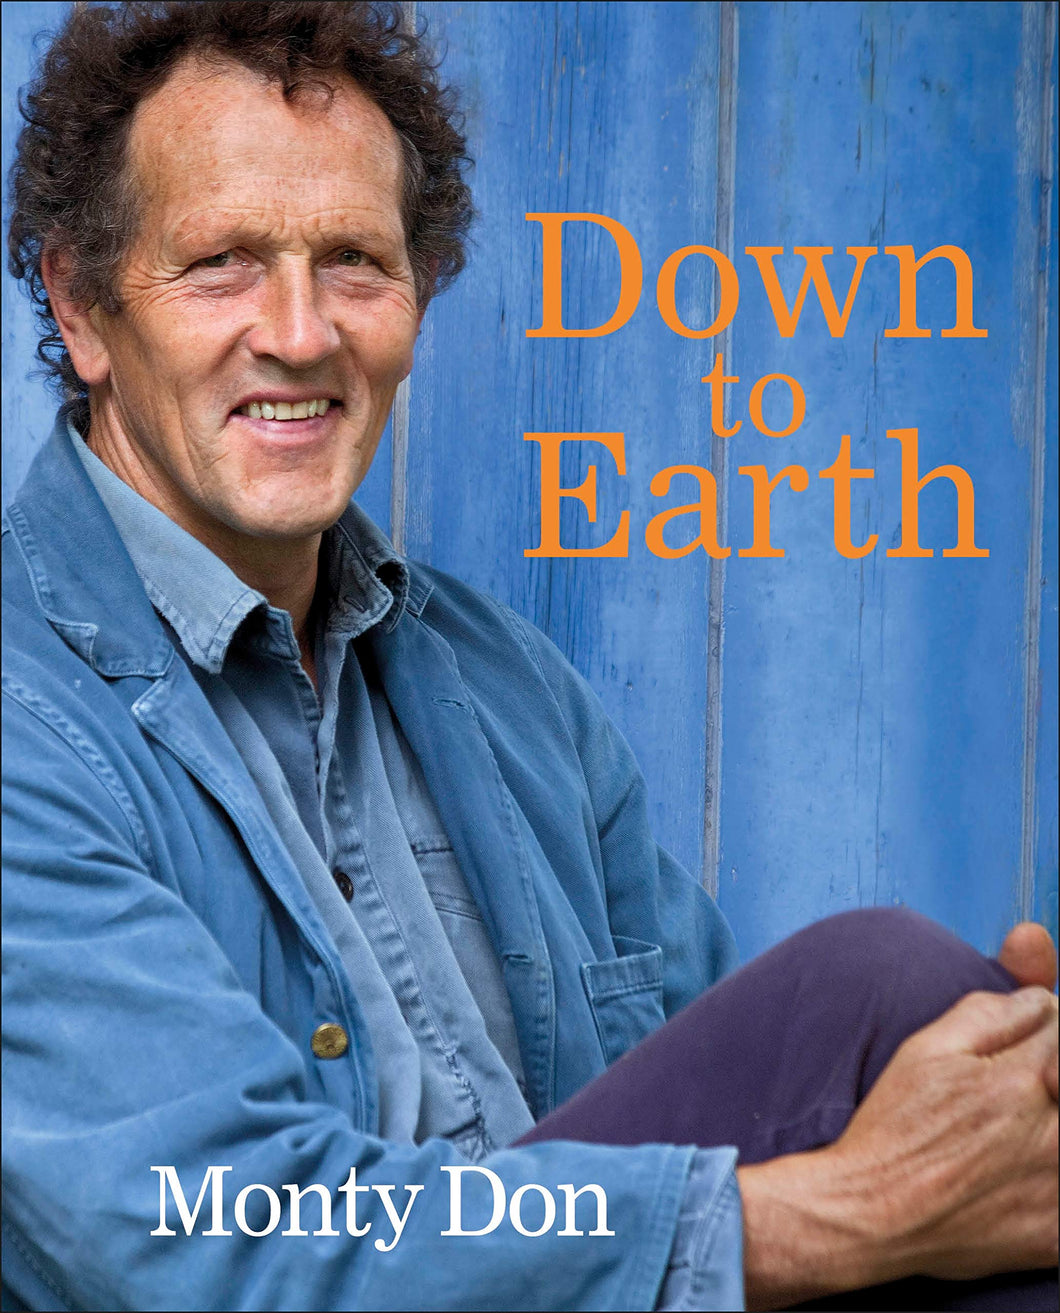 Down to Earth: Gardening Wisdom - Monty Don